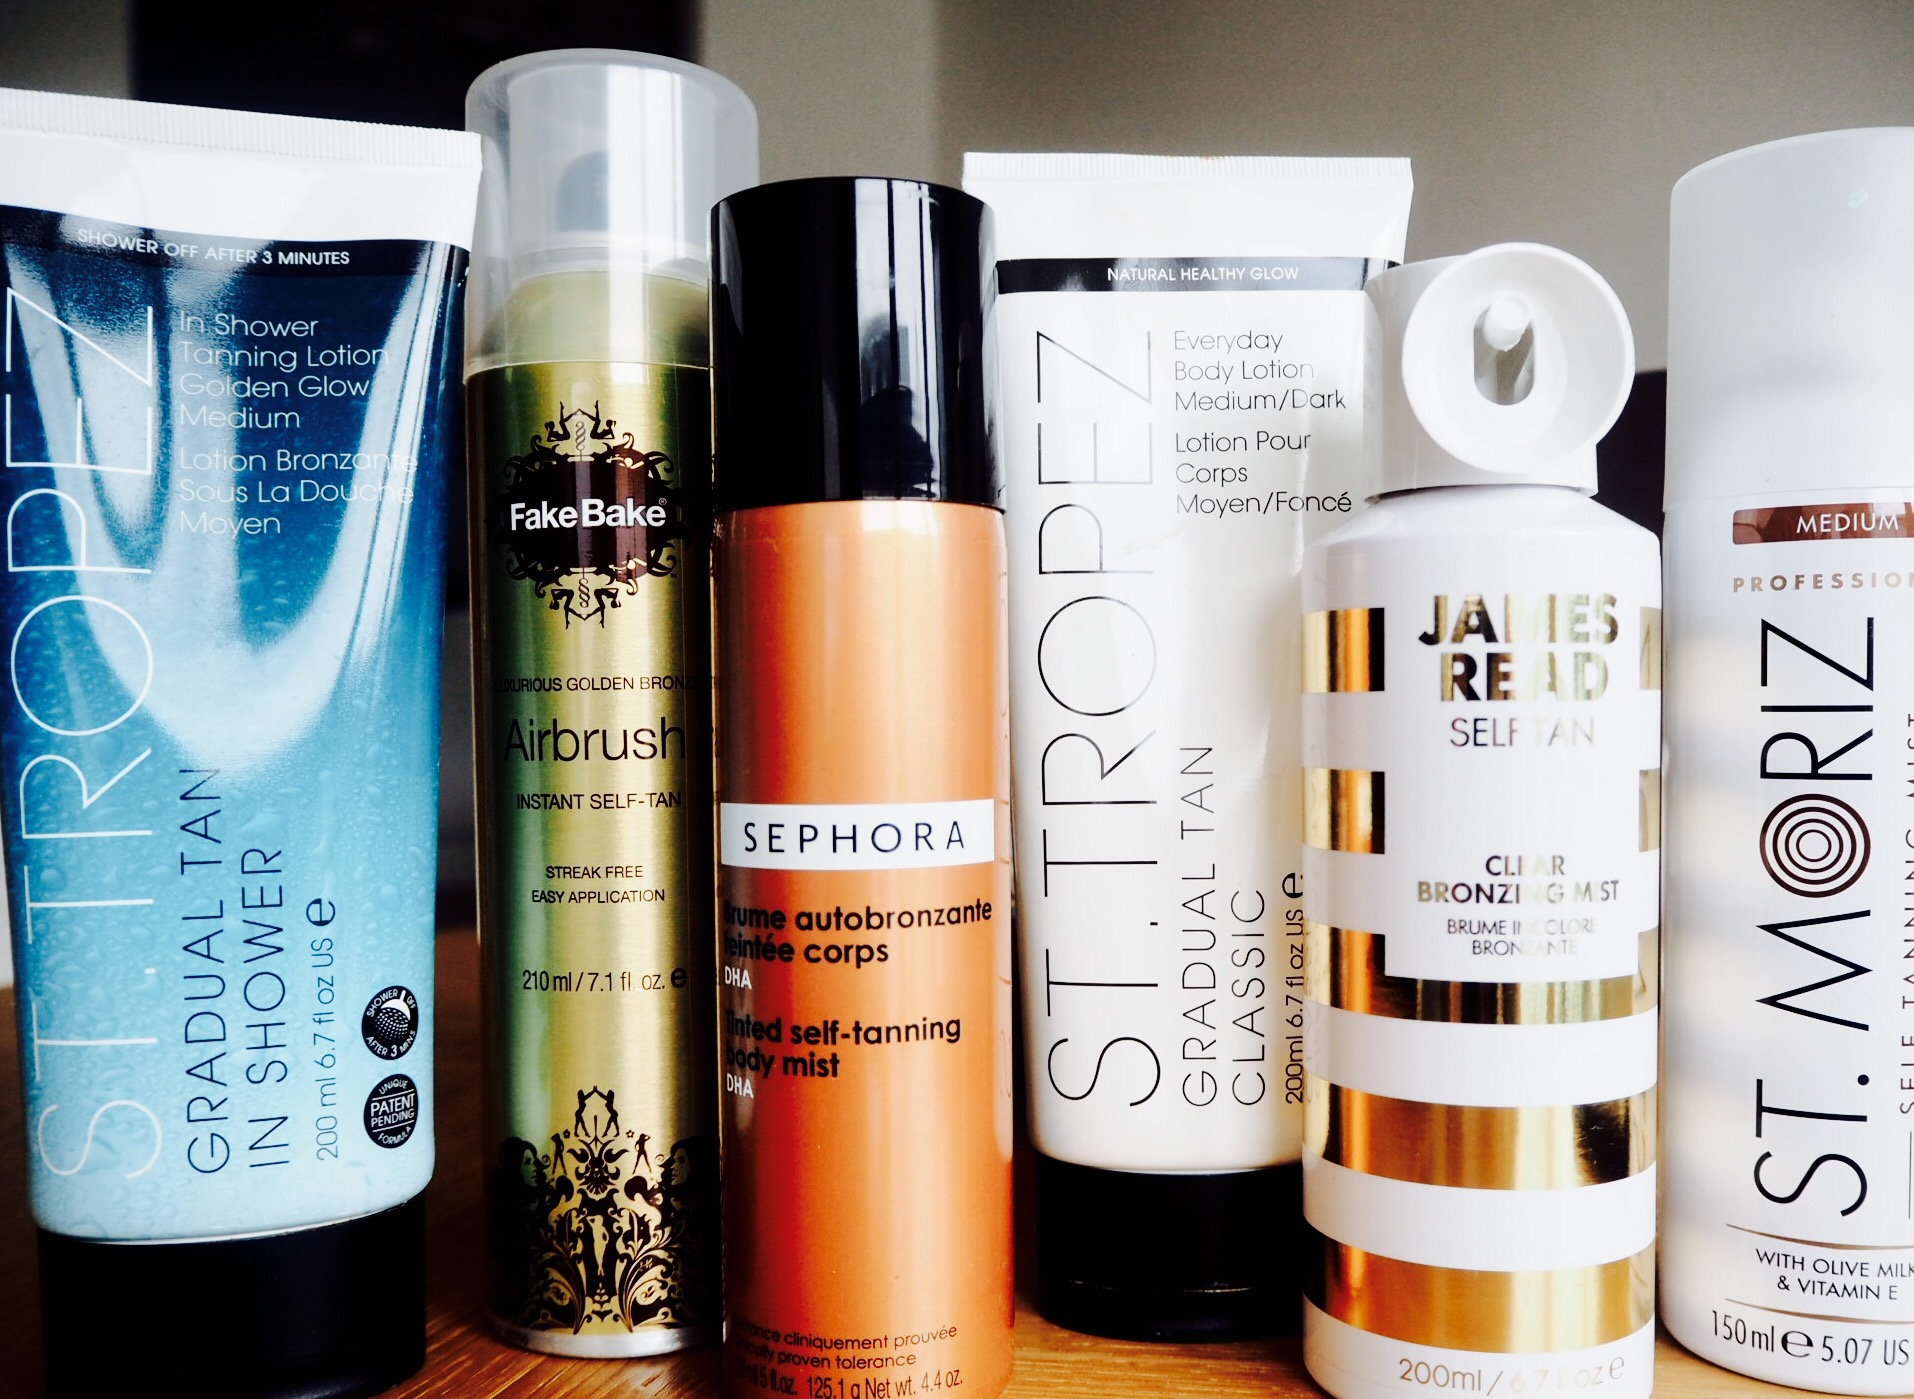 Landscape photo of various fake tan: St Tropez, FakeBake, Sephora, James Read and St Moriz